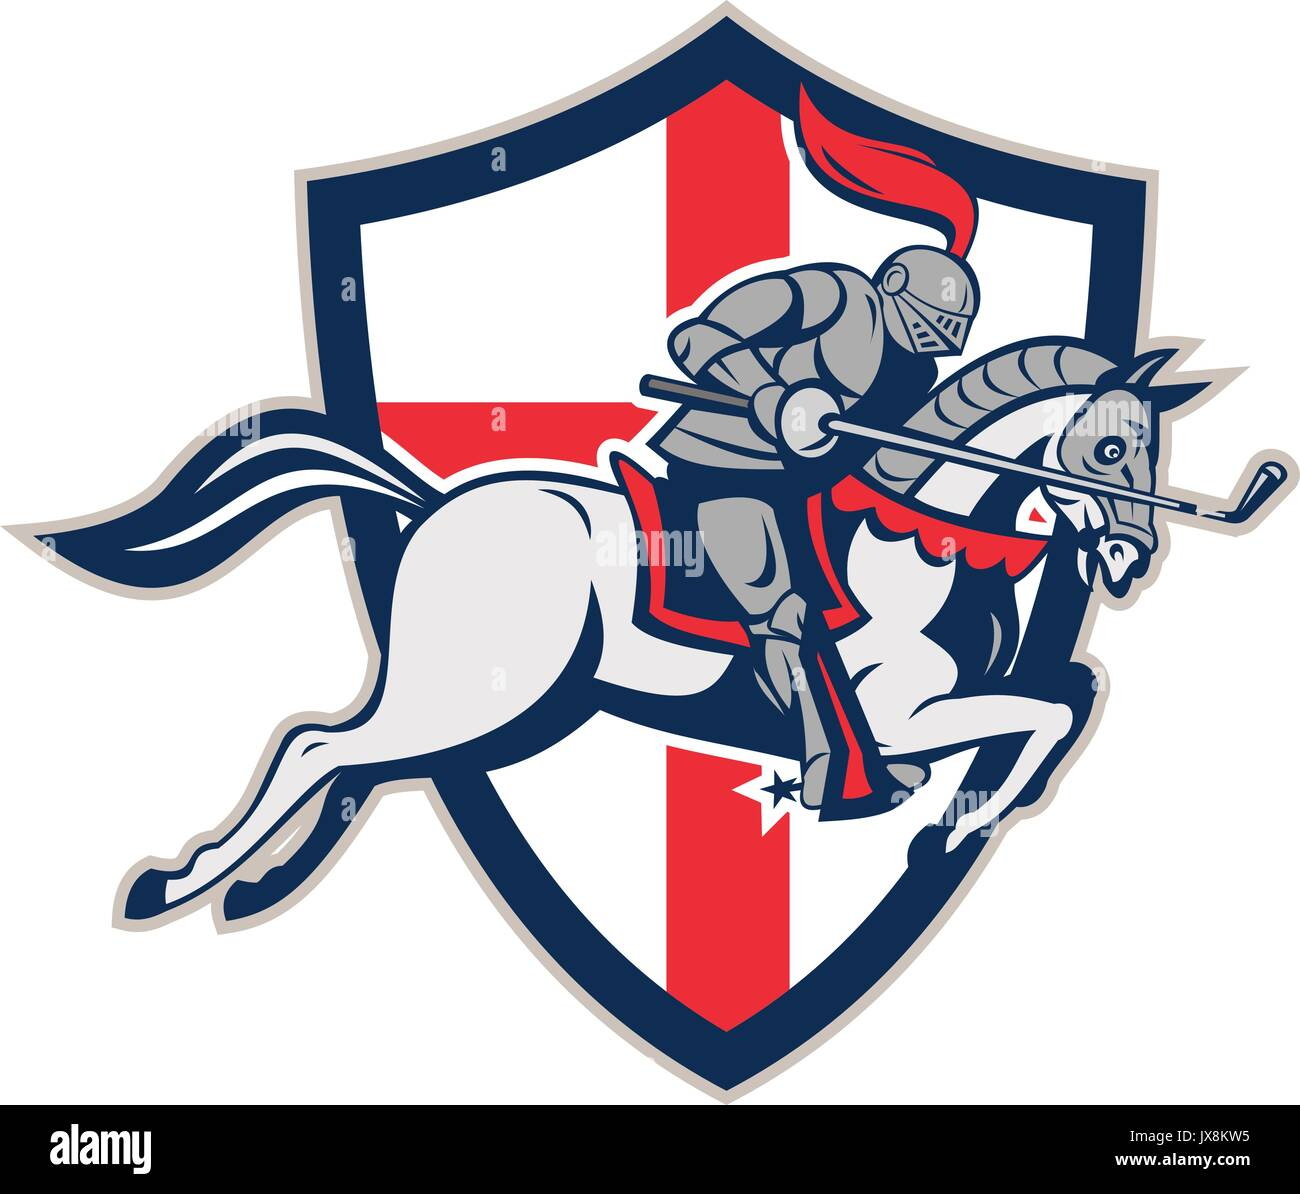 Illustration of an English knight in full armor riding a horse armed with golf club like a lance and England flag in background done in retro style. - Stock Vector